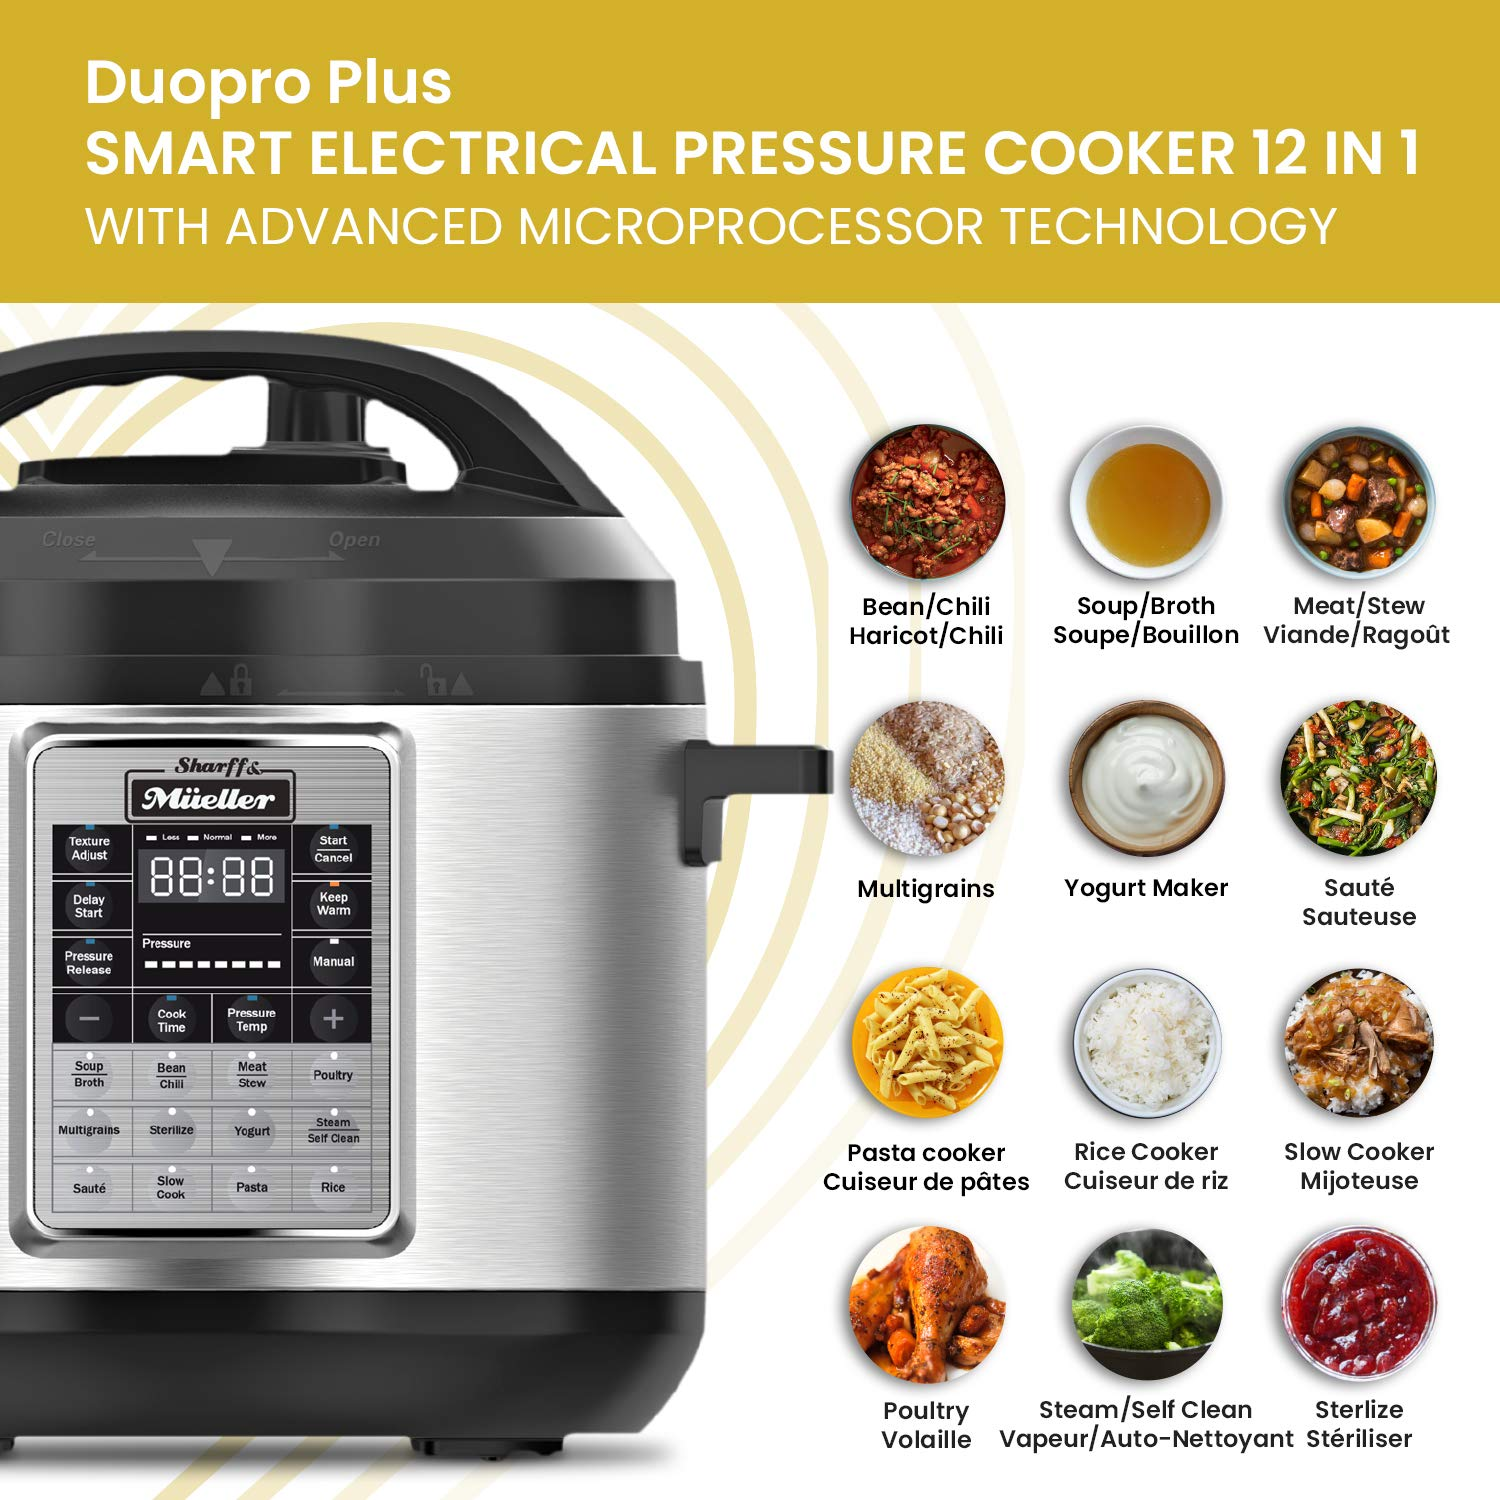 Electric Pressure Cooker 6 Quart Stainless Steel 12 in 1 Programmable Multipot Cooker Duopro RecipeBook Included by Sharff and Mueller by Sharff & Müeller (Image #6)